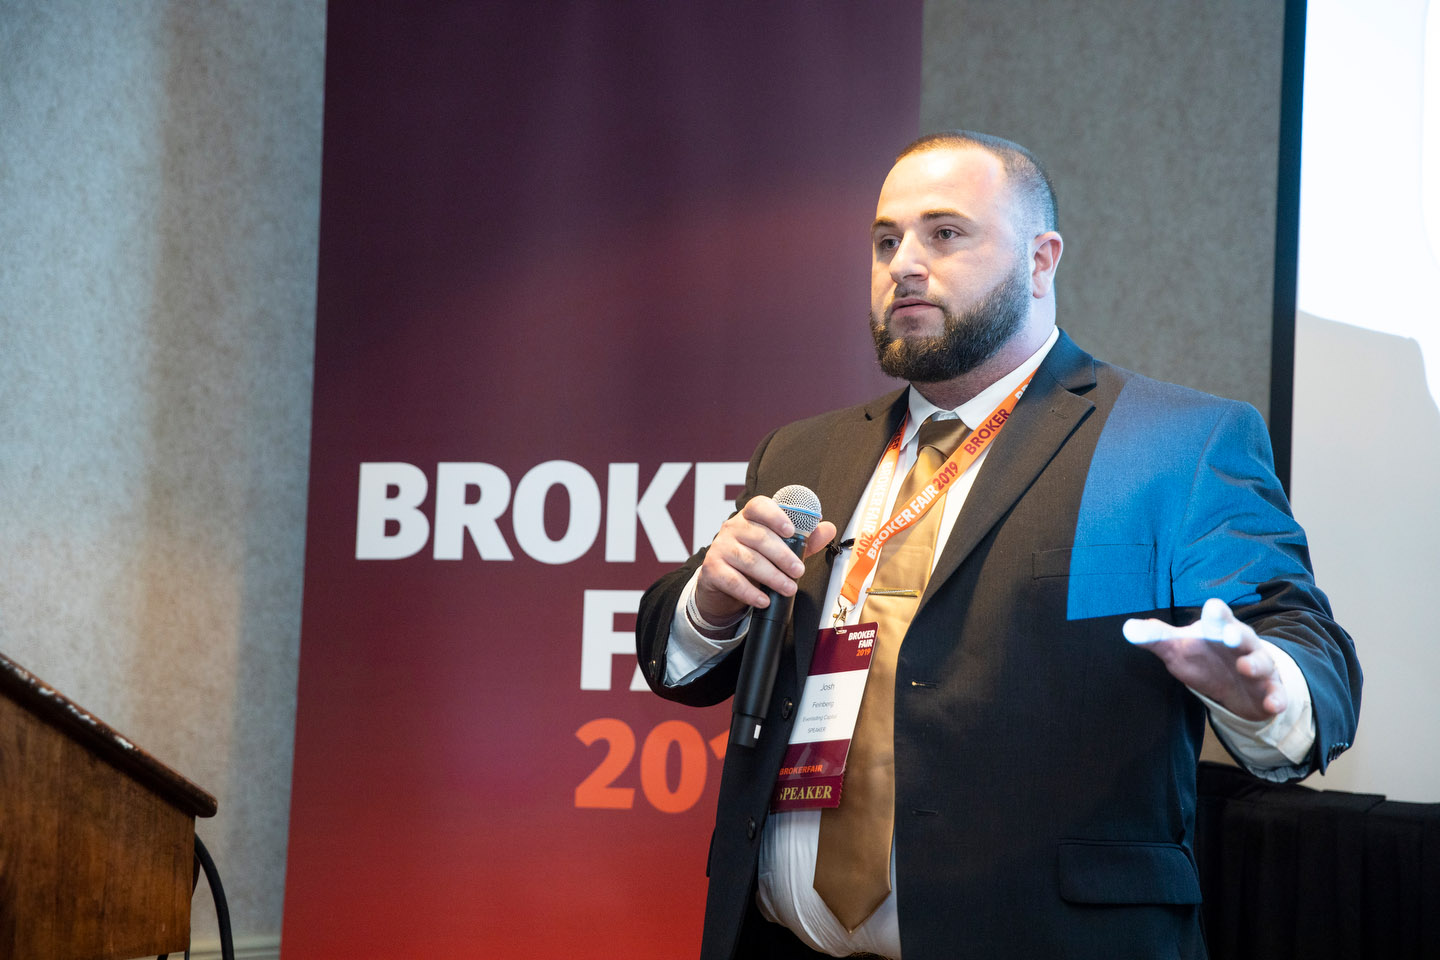 Broker Fair 2019 - Presented by deBanked - 263